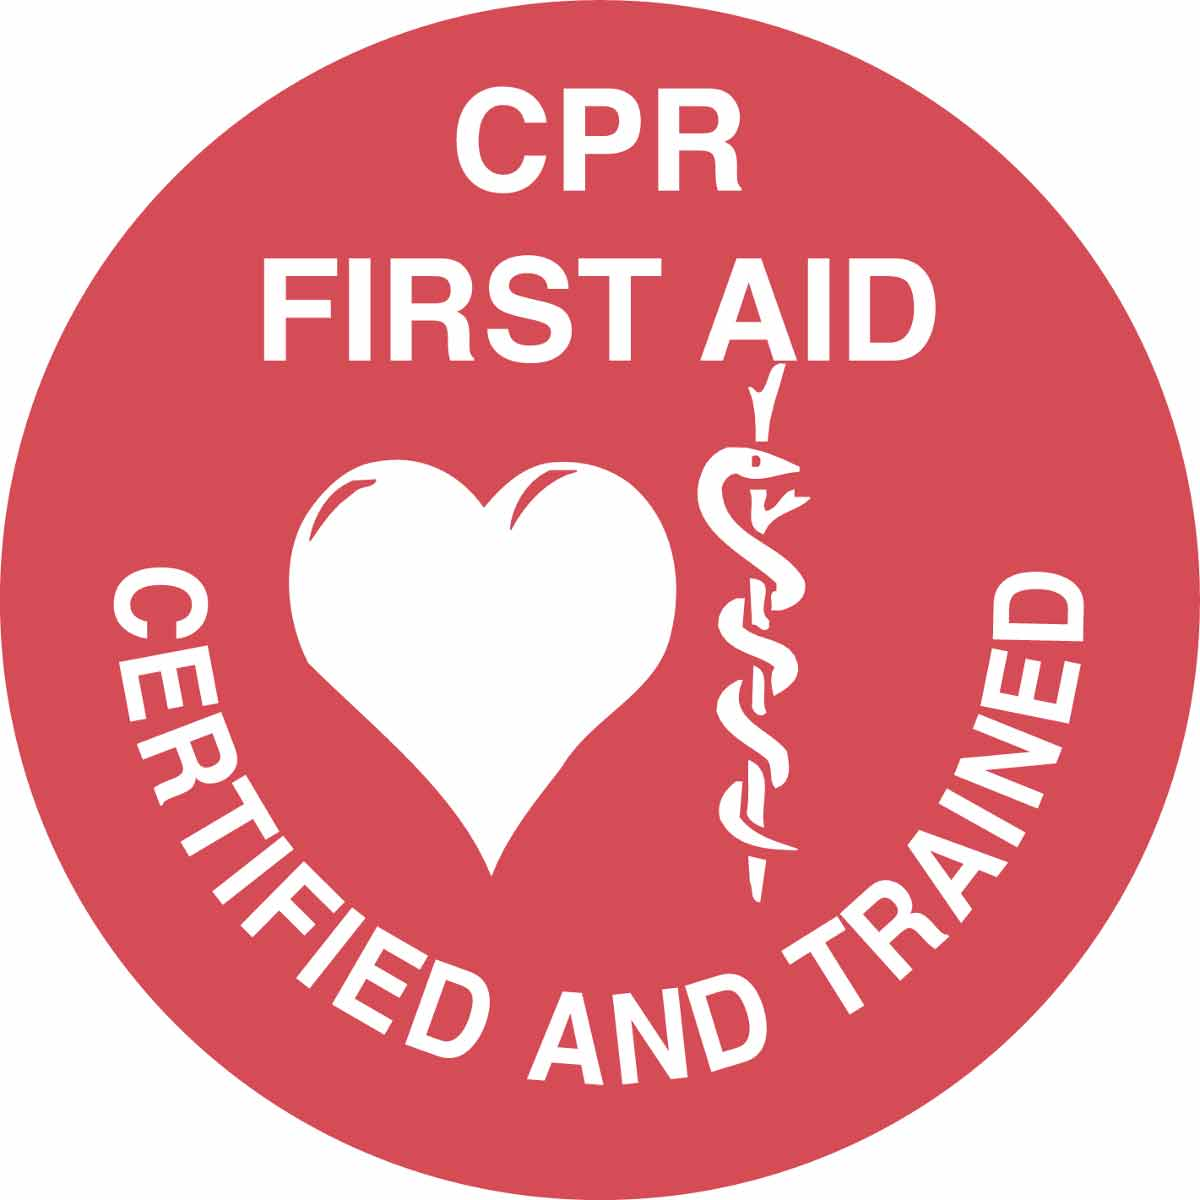 Brady part 42234 cpr first aid certified and trained hard hat brady part 42234 cpr first aid certified and trained hard hat labels bradyid xflitez Choice Image